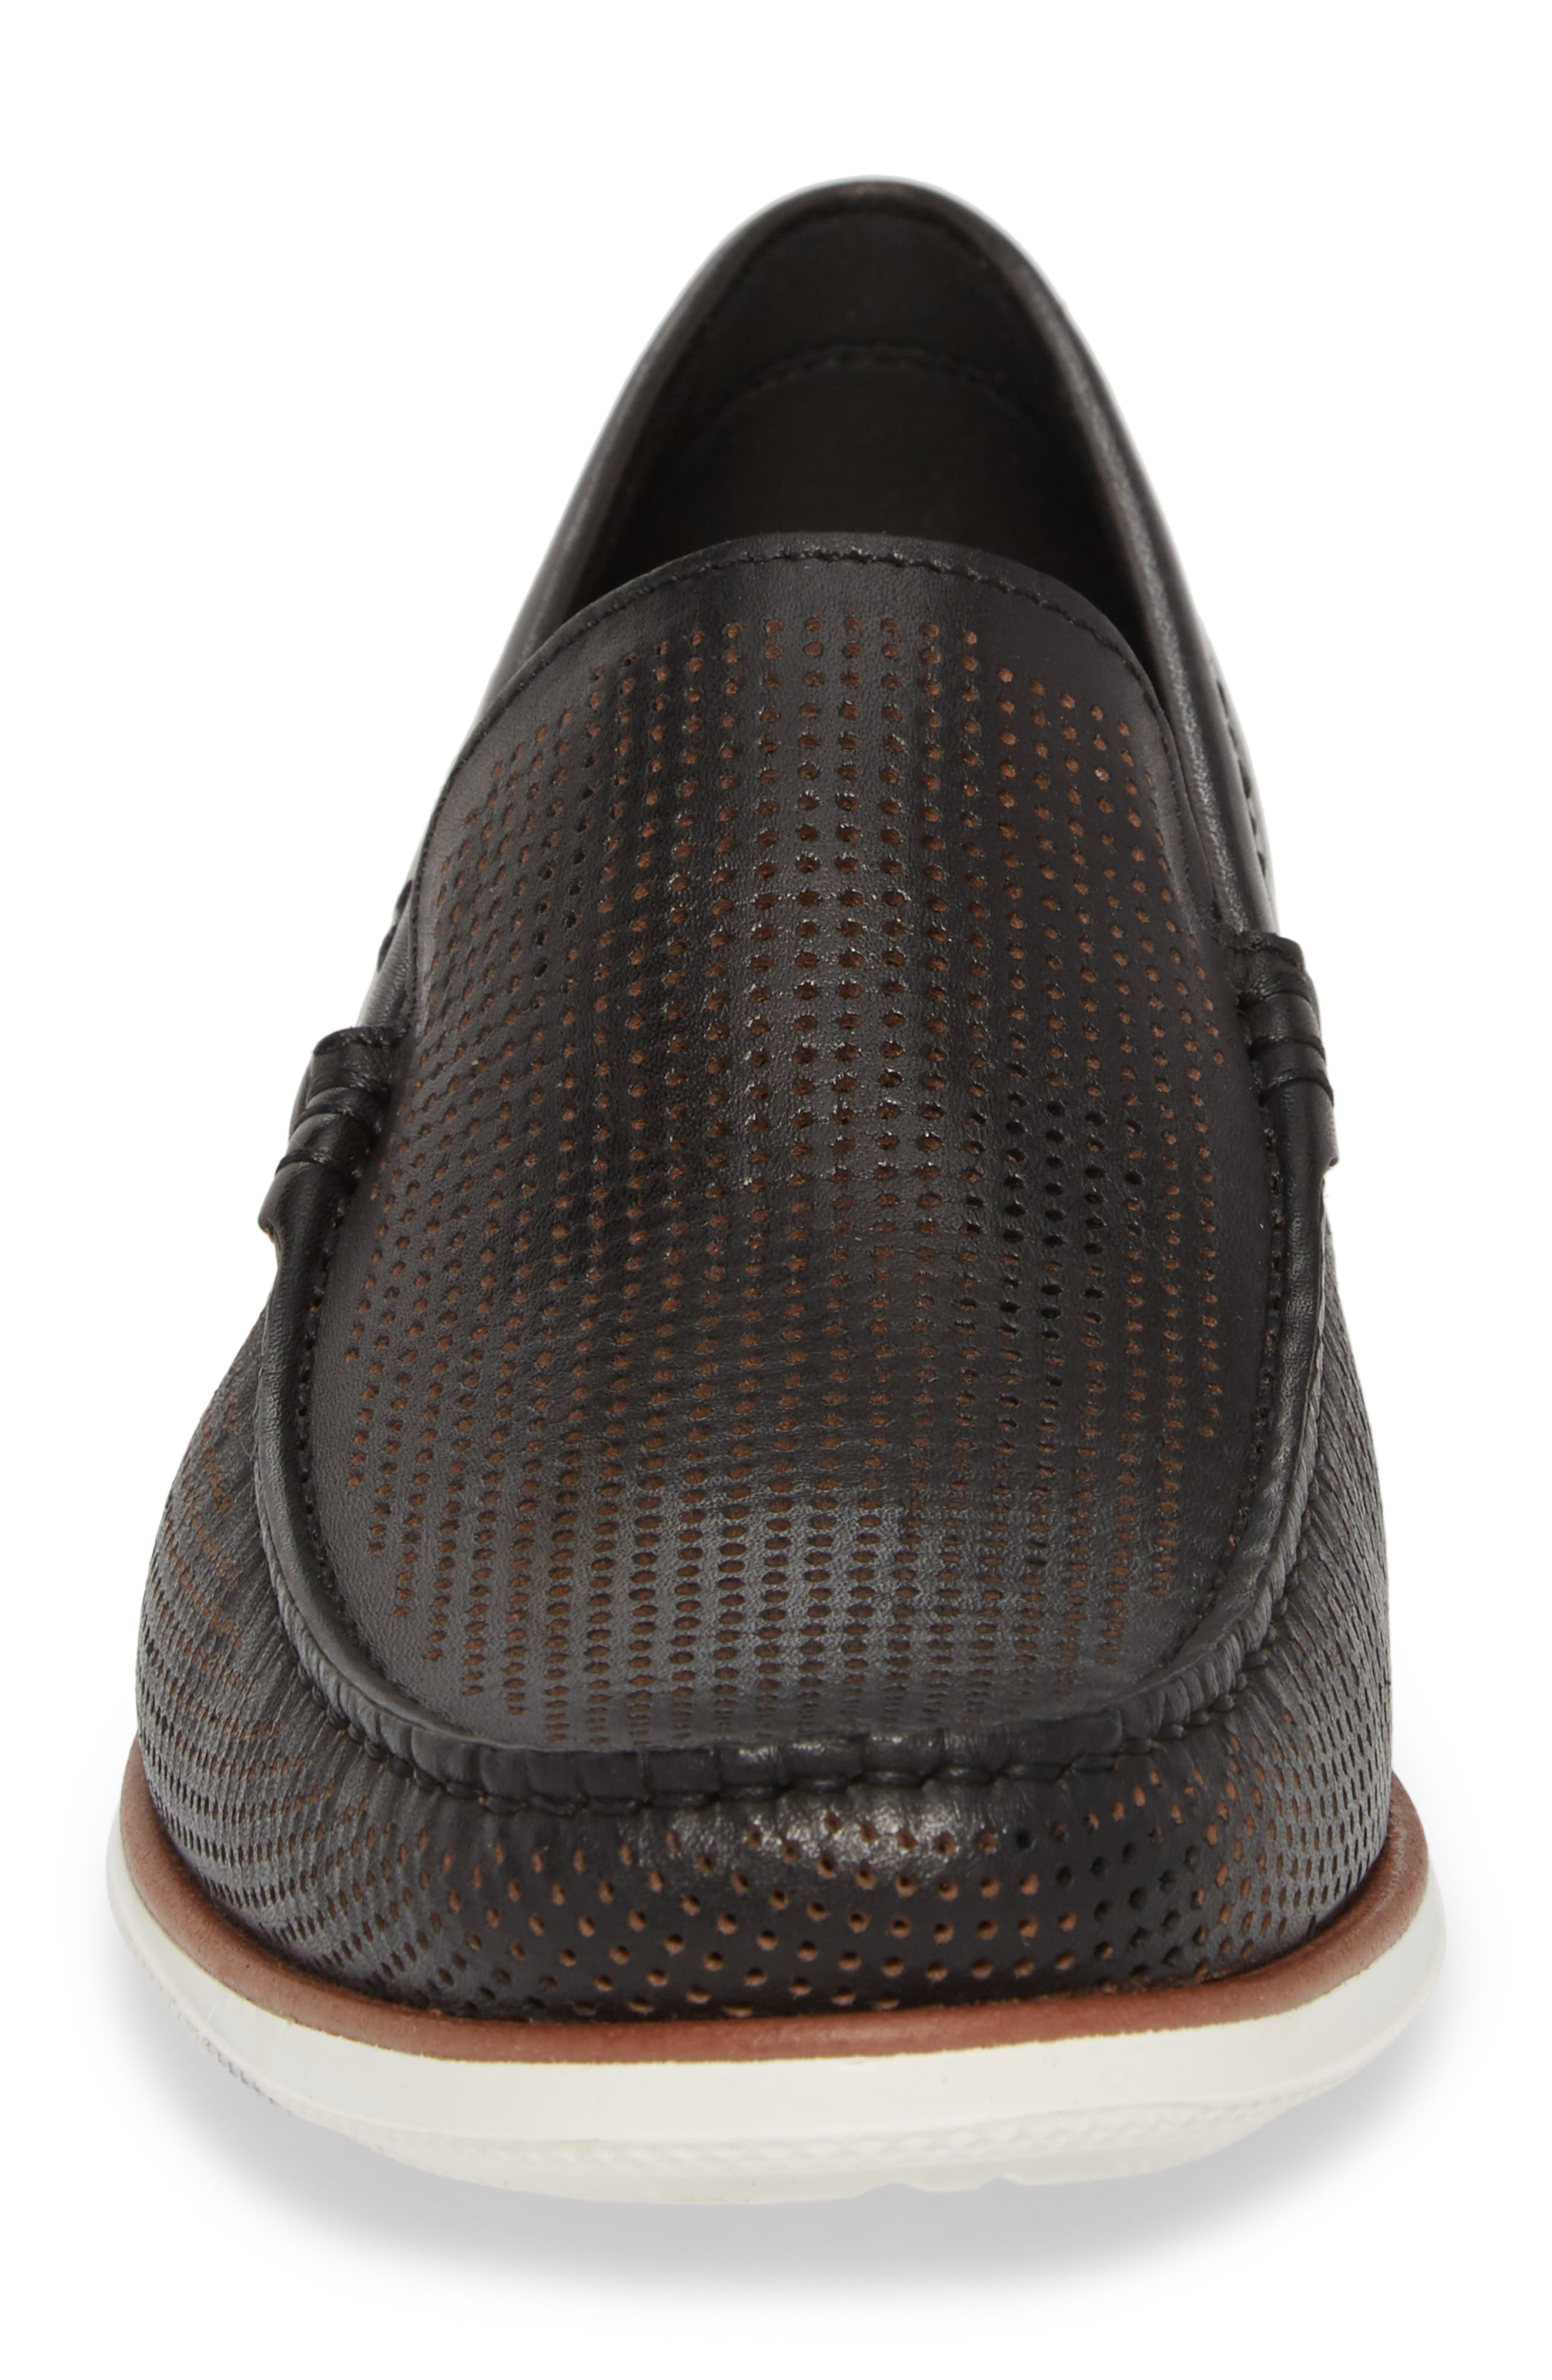 Cyrus Venetian Loafer,                             Alternate thumbnail 10, color,